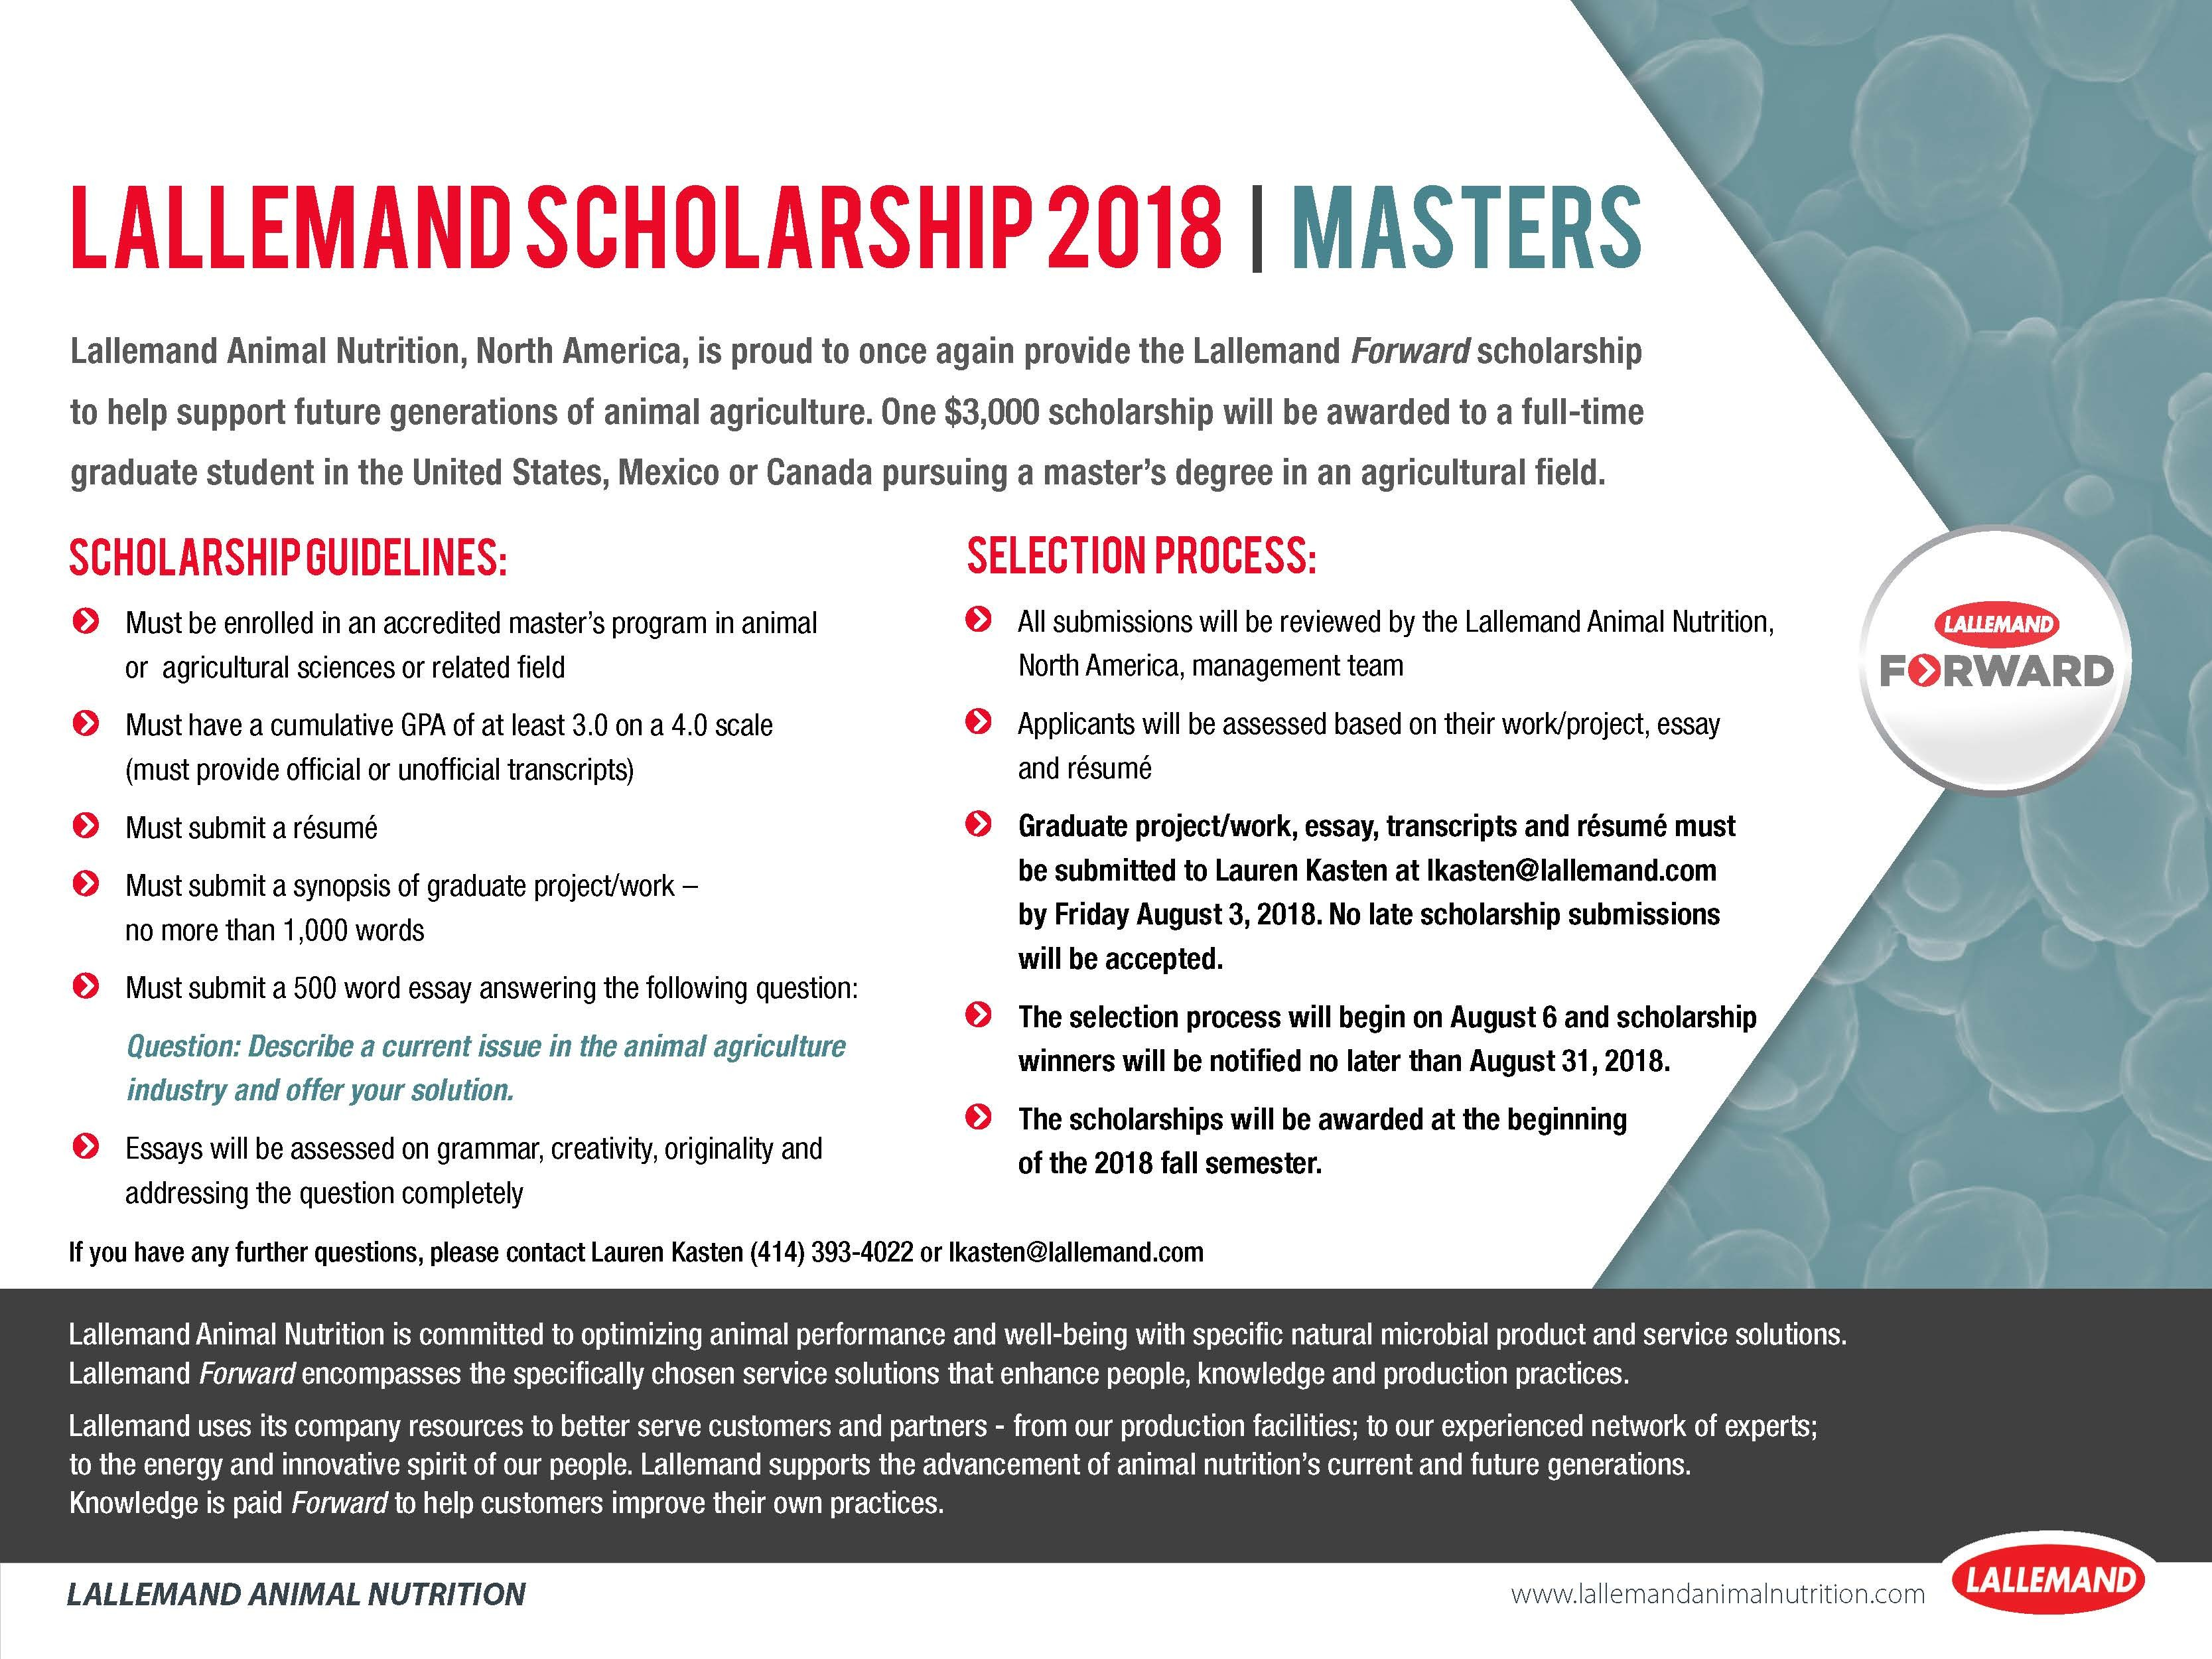 March 2019 Calendar Sri Lanka Más Reciente Lallemand Animal Nutrition Offers Scholarships for Fourth Year Of March 2019 Calendar Sri Lanka Más Arriba-a-fecha events City Nomads